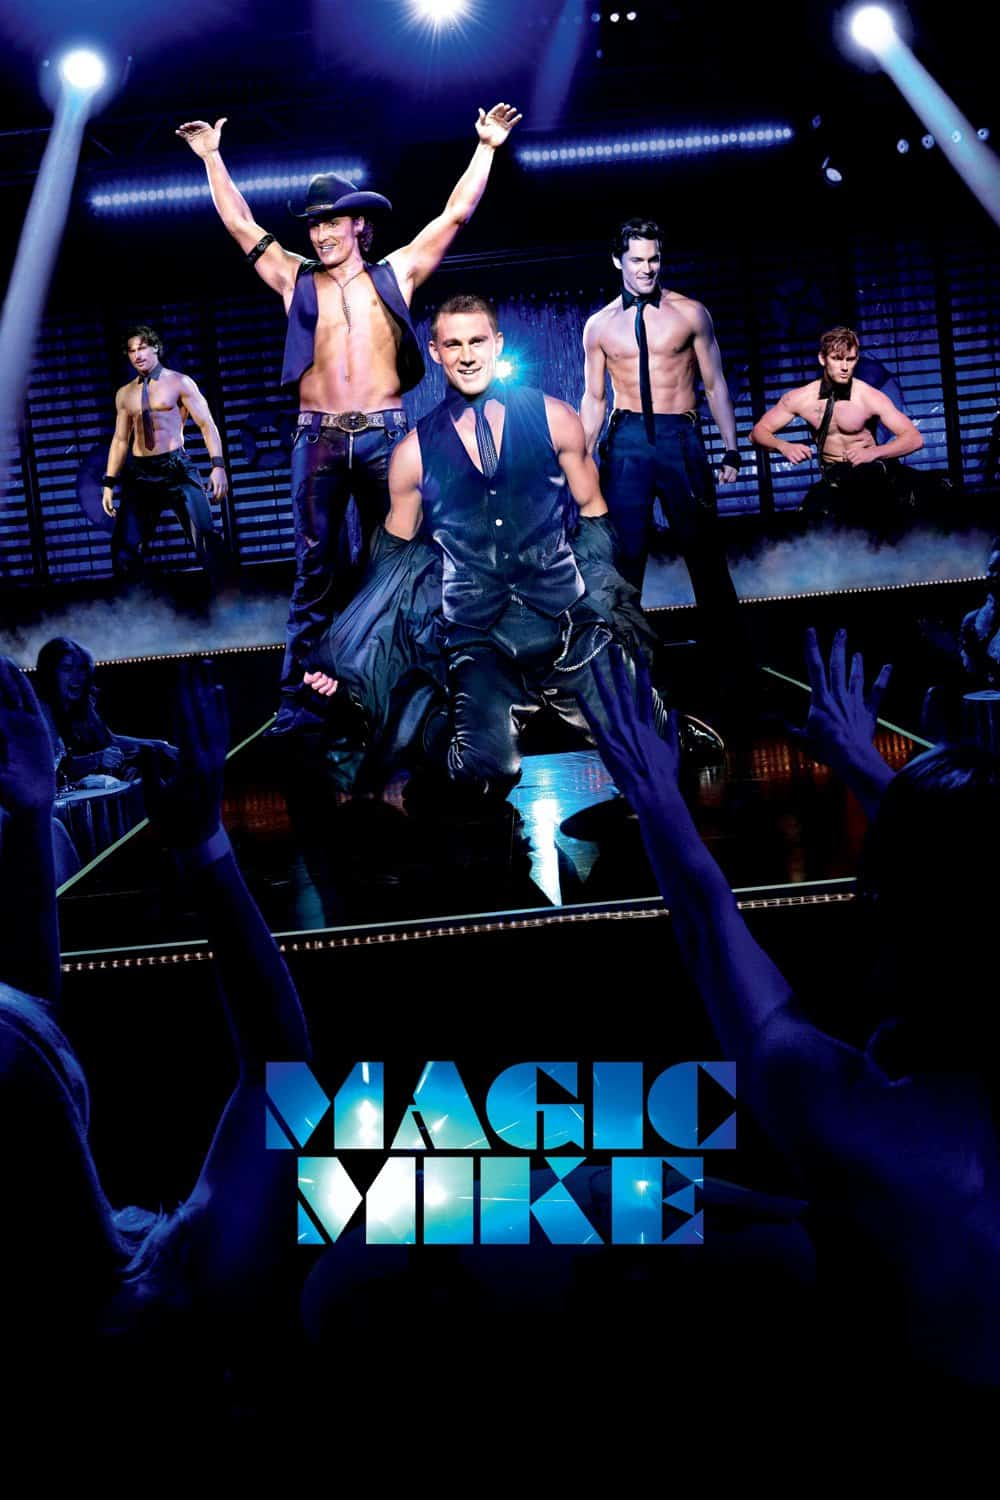 Magic Mike, 2012